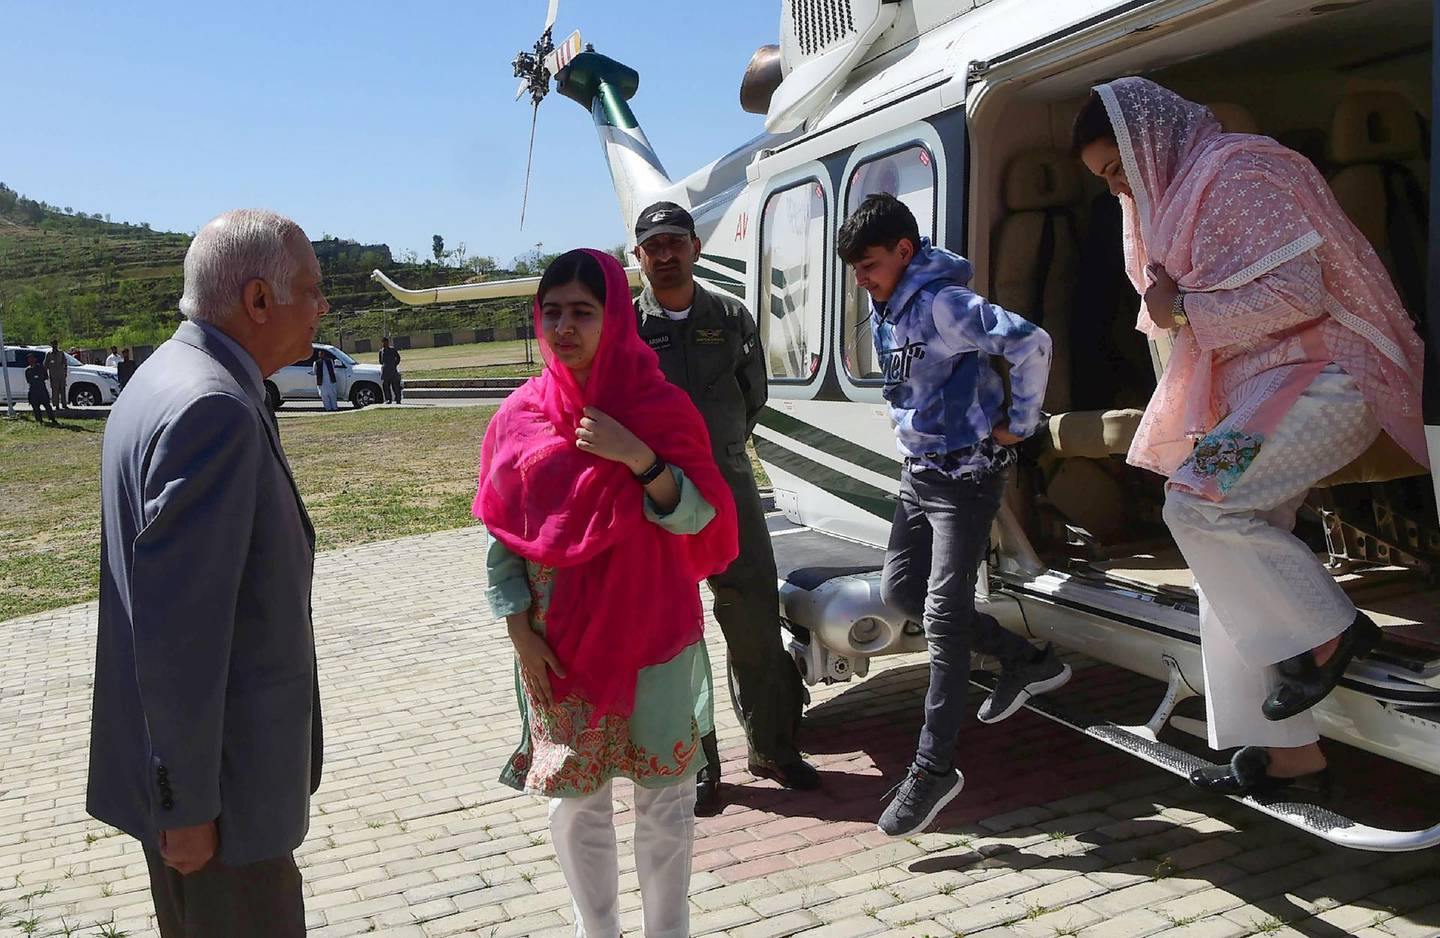 Pakistani activist and Nobel Peace Prize laureate Malala Yousafzai (C), meets with the principal (2L) of all-boys Swat Cadet College Guli Bagh, upon her arrival during her hometown visit, some 15 kilometres outside of Mingora, on March 31, 2018. Malala Yousafzai landed in the Swat valley on March 31 for her first visit back to the once militant-infested Pakistani region where she was shot in the head by the Taliban more than five years ago. / AFP PHOTO / ABDUL MAJEED